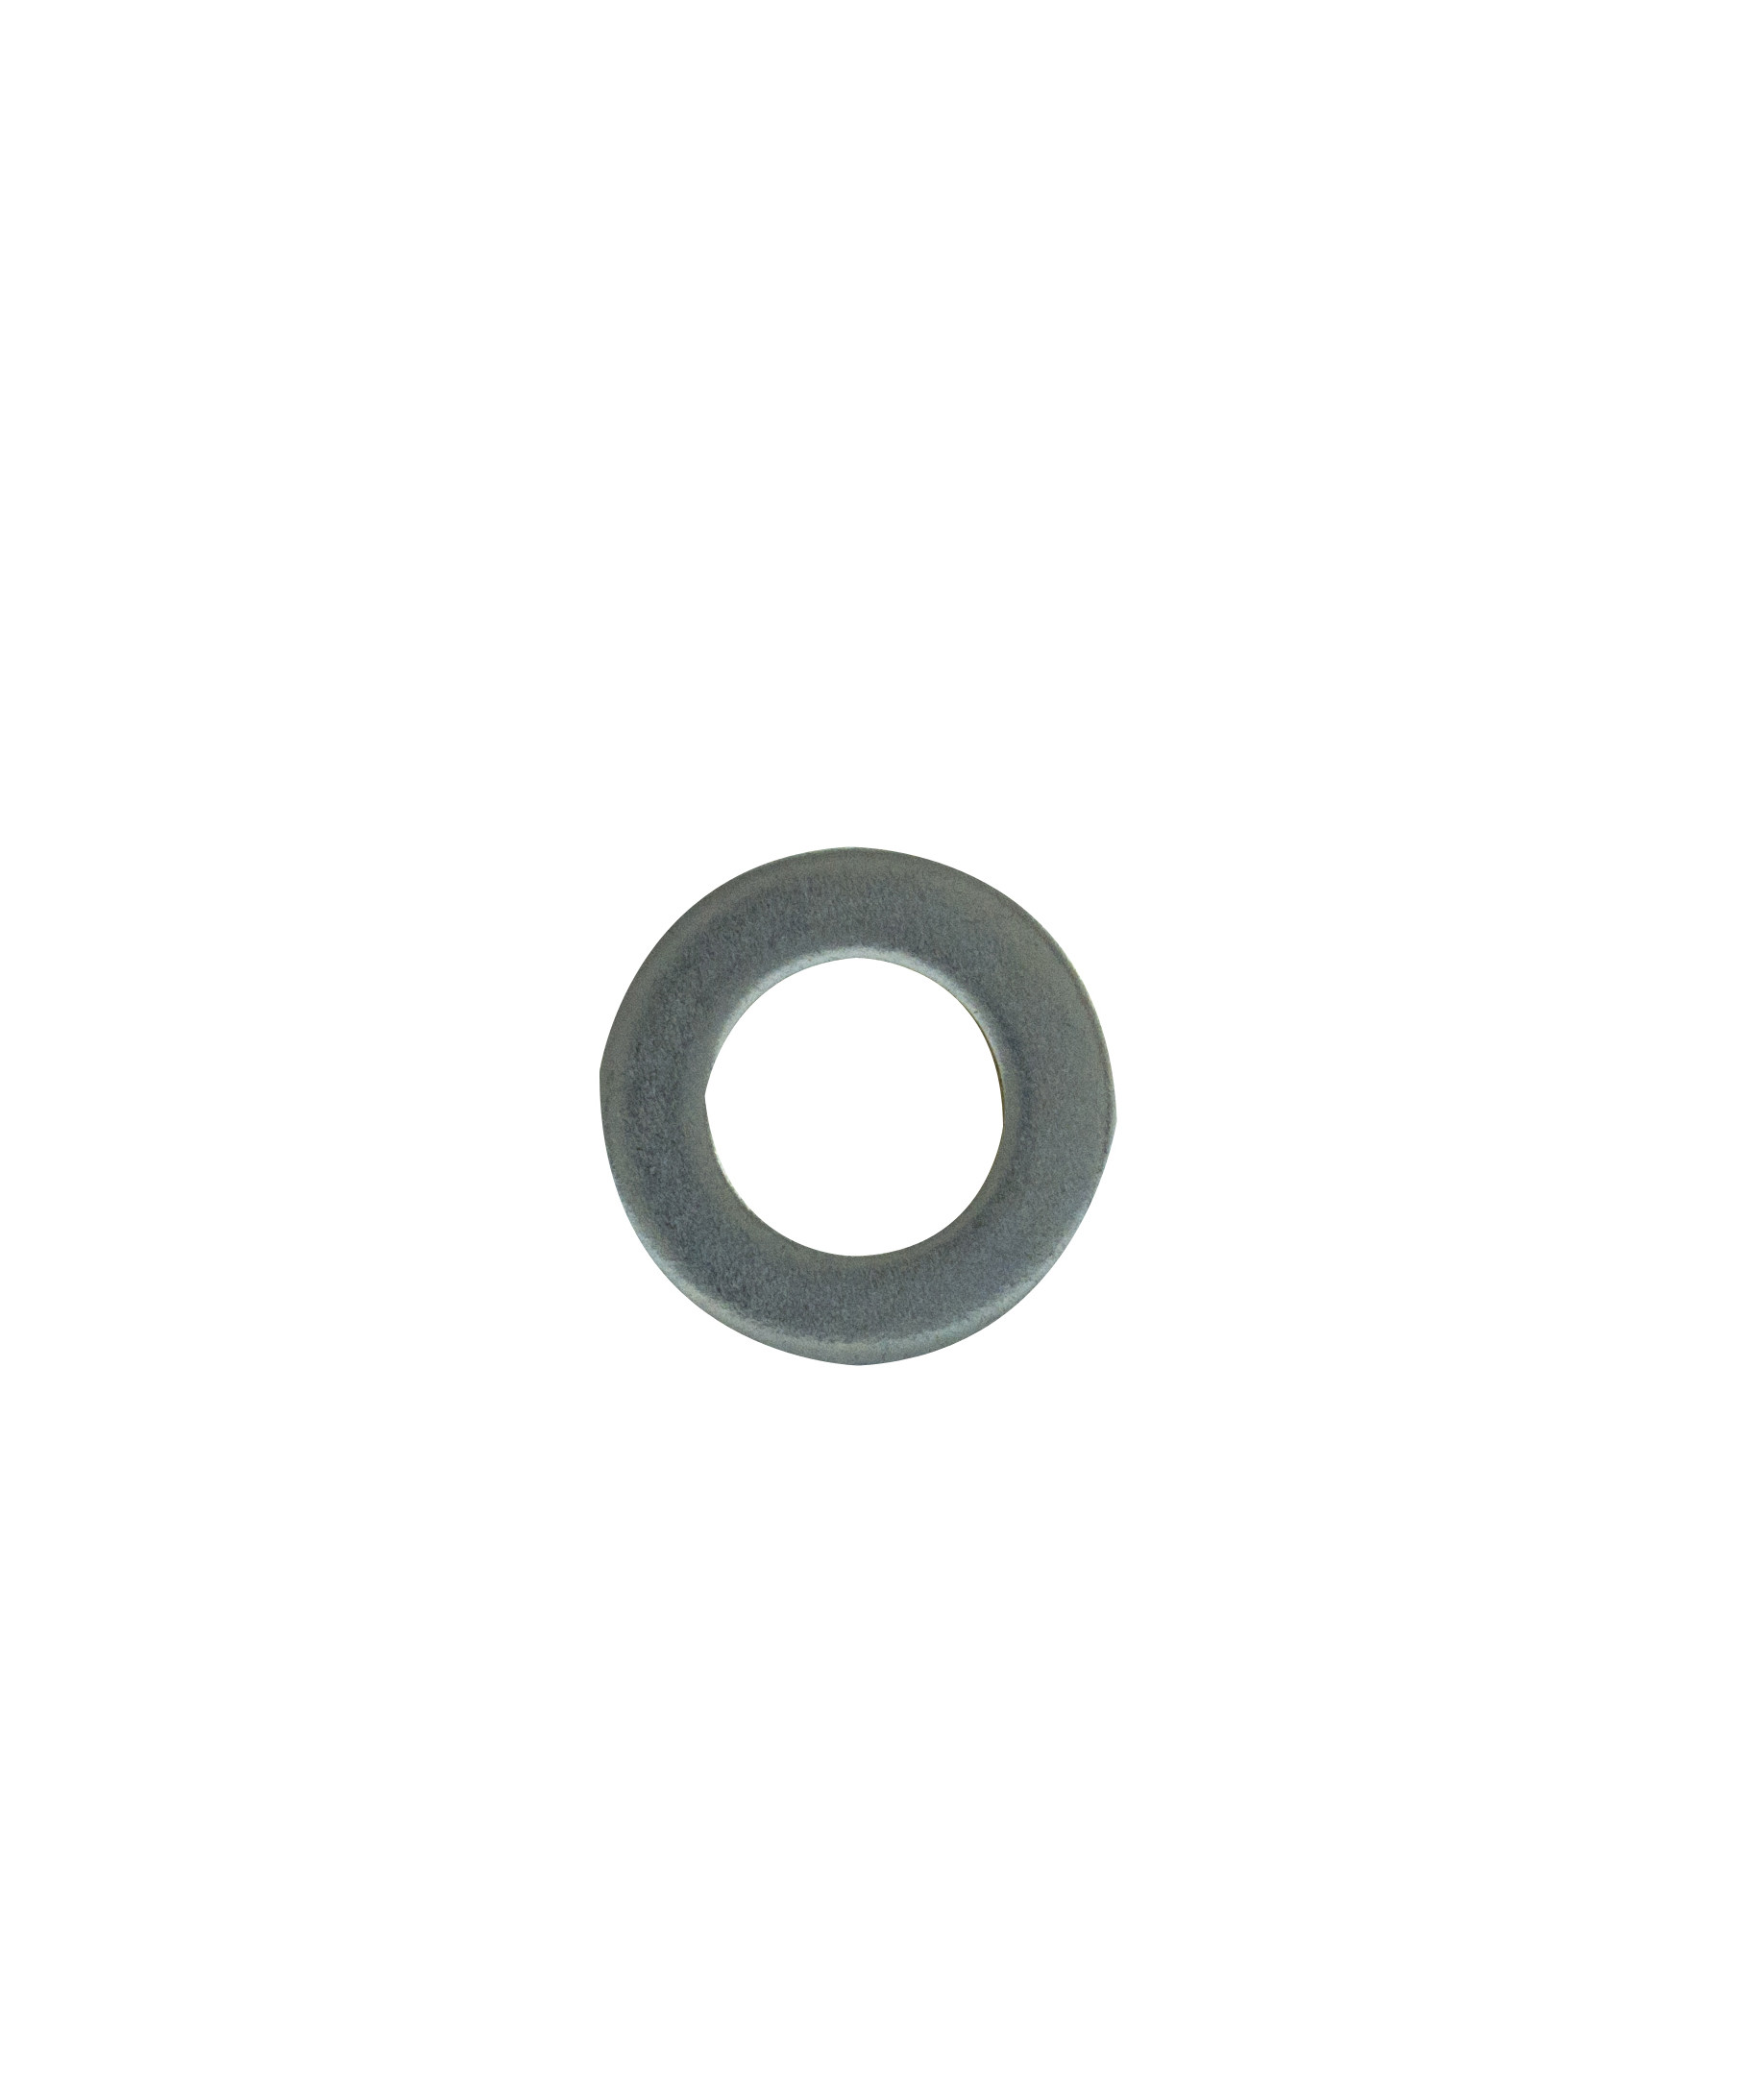 M10 Metric Flat Washer DIN 125A BZP (Each) ***